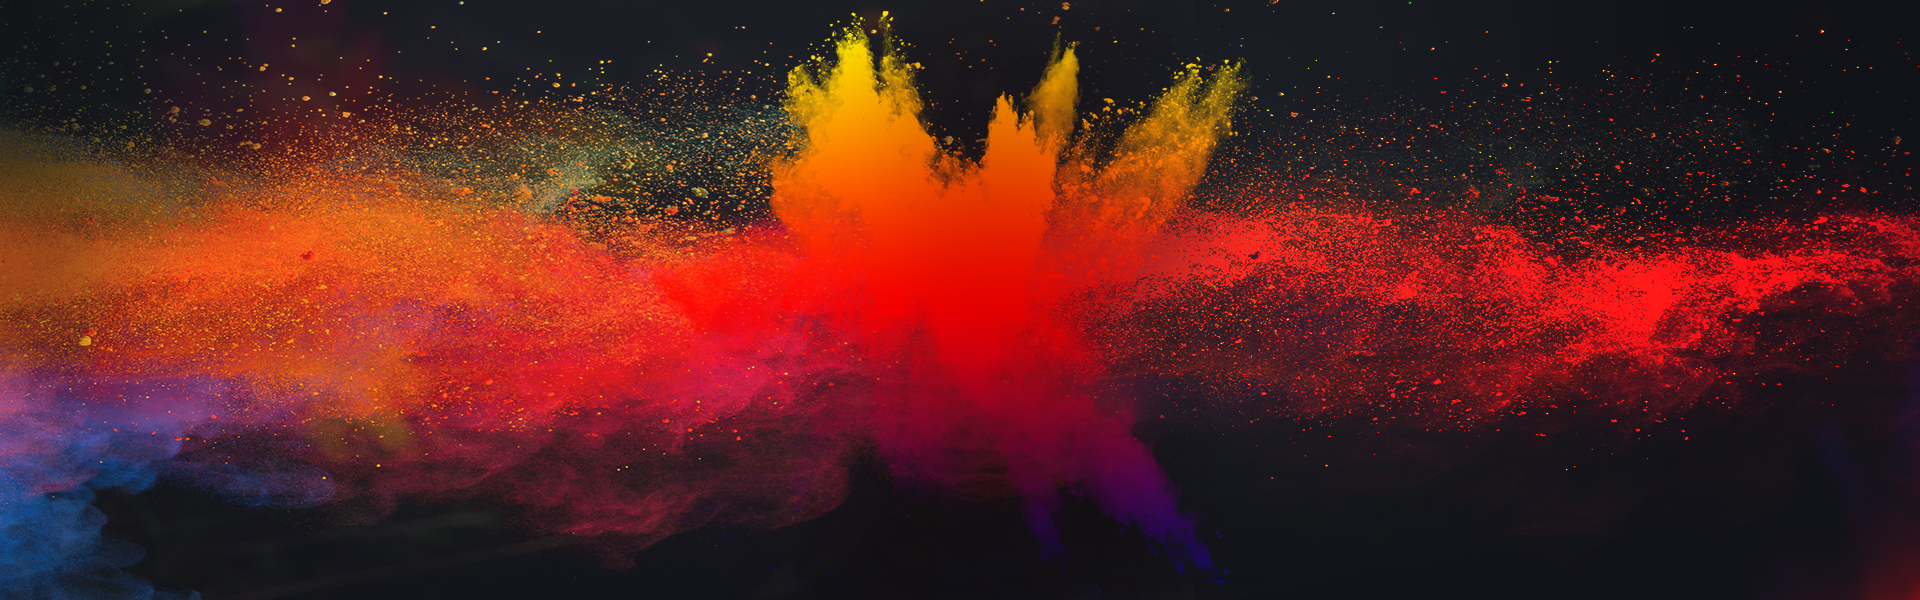 background color explosion  color  explosion  powder